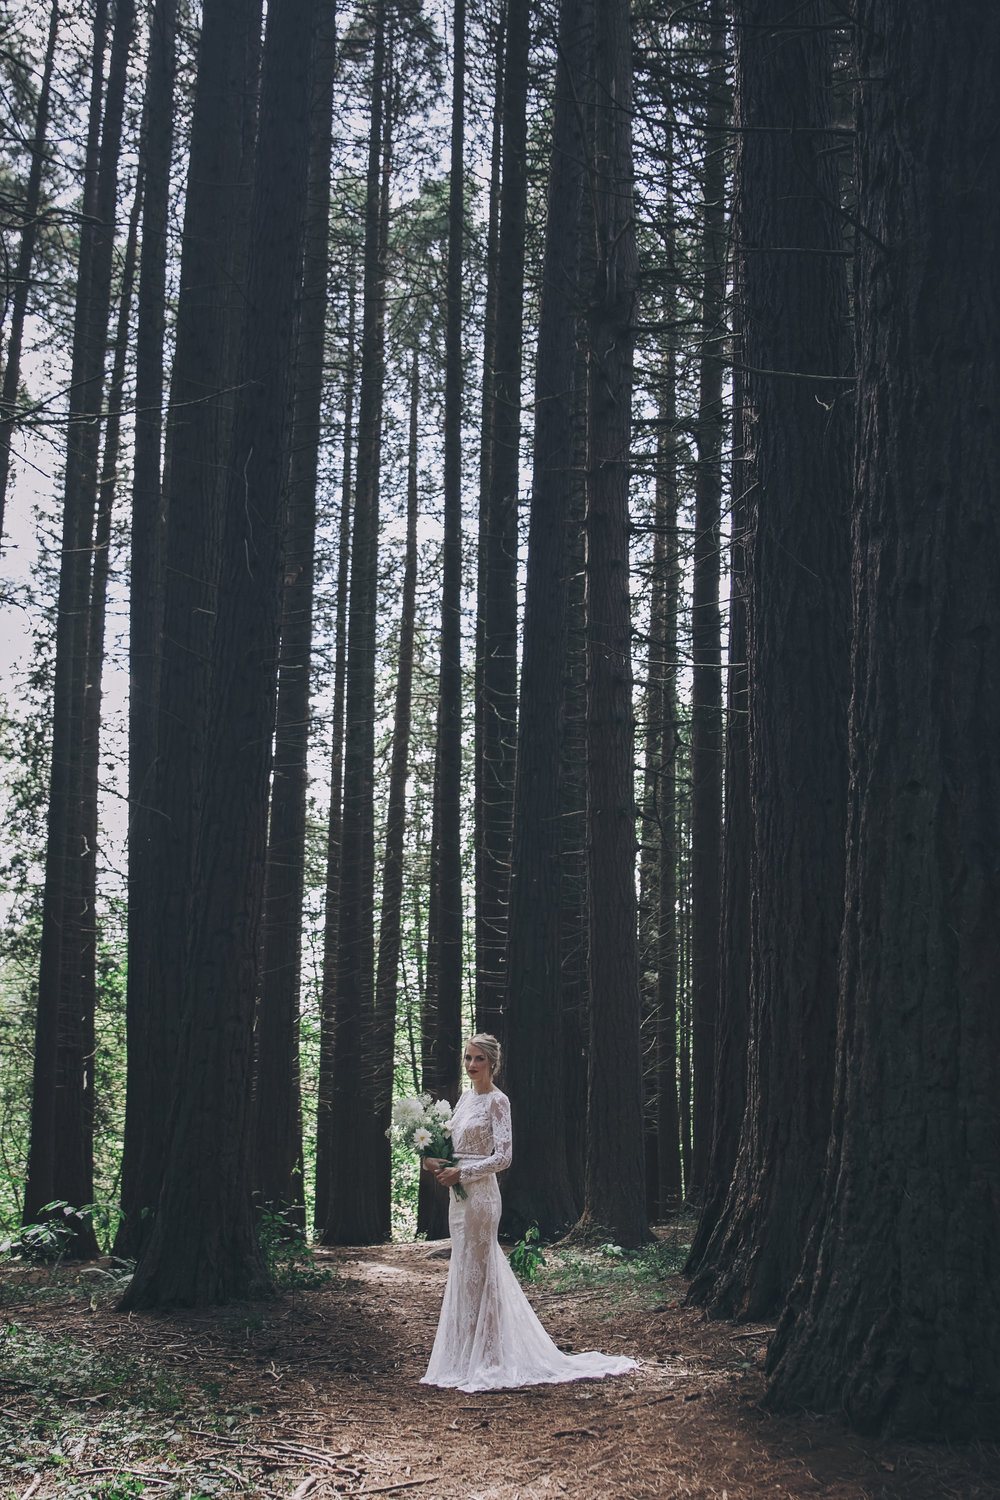 A whimsical styled wedding in the redwood Forest. Featuring a lace sheath gown, wild flowers and a deep connection. Based In Vancouver, BC. Photography By Mimsical Photography | Dress Designer: Calla Blanche | Bridal Boutique: Everything But the Groom | Make up: Jaymie Dekker    #whitewedding #casualwedding #bohemianwedding #woodlandwedding #lacegown #sheathgown #white #whitebouquet #wildflowerbouquet #messyupdo #relaxedupdo #redlips #babysbreath #dahlia #wedding #bride #groom #bridalportrait #emotionalphotography #connectionphotography #woodland #redwood #trees #musthave #moodywedding #vancouverwedding #vancouverbc #weddingdress #weddinginspo #bridalinspo #beards #beardedgroom